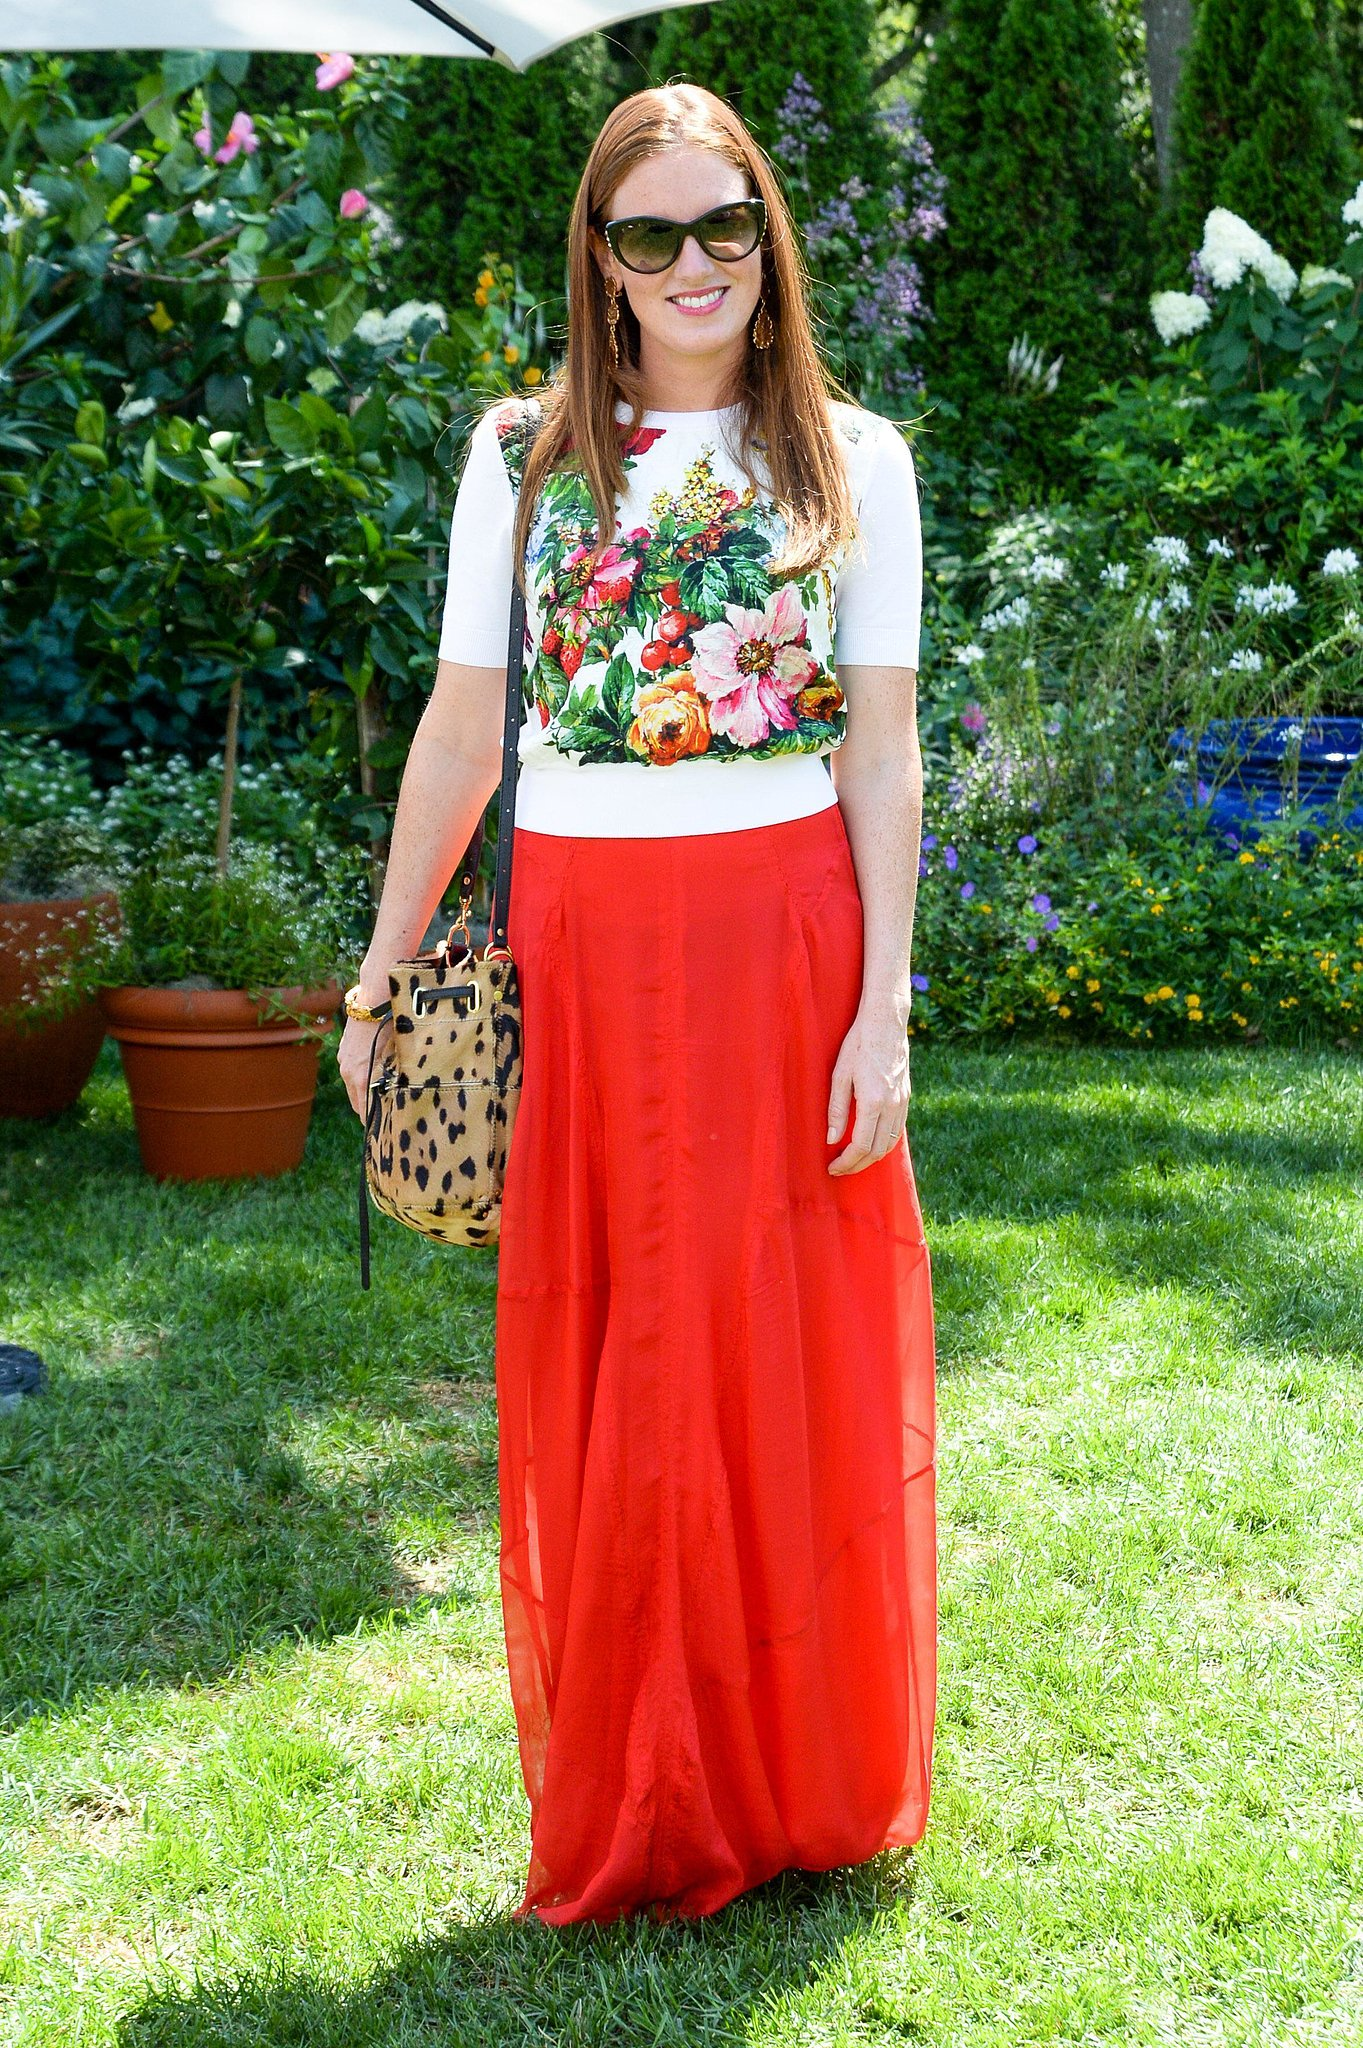 Bettina Prentice was garden-party-ready in a floral topper and bright maxi skirt at Dolce & Gabbana's Southampton luncheon.